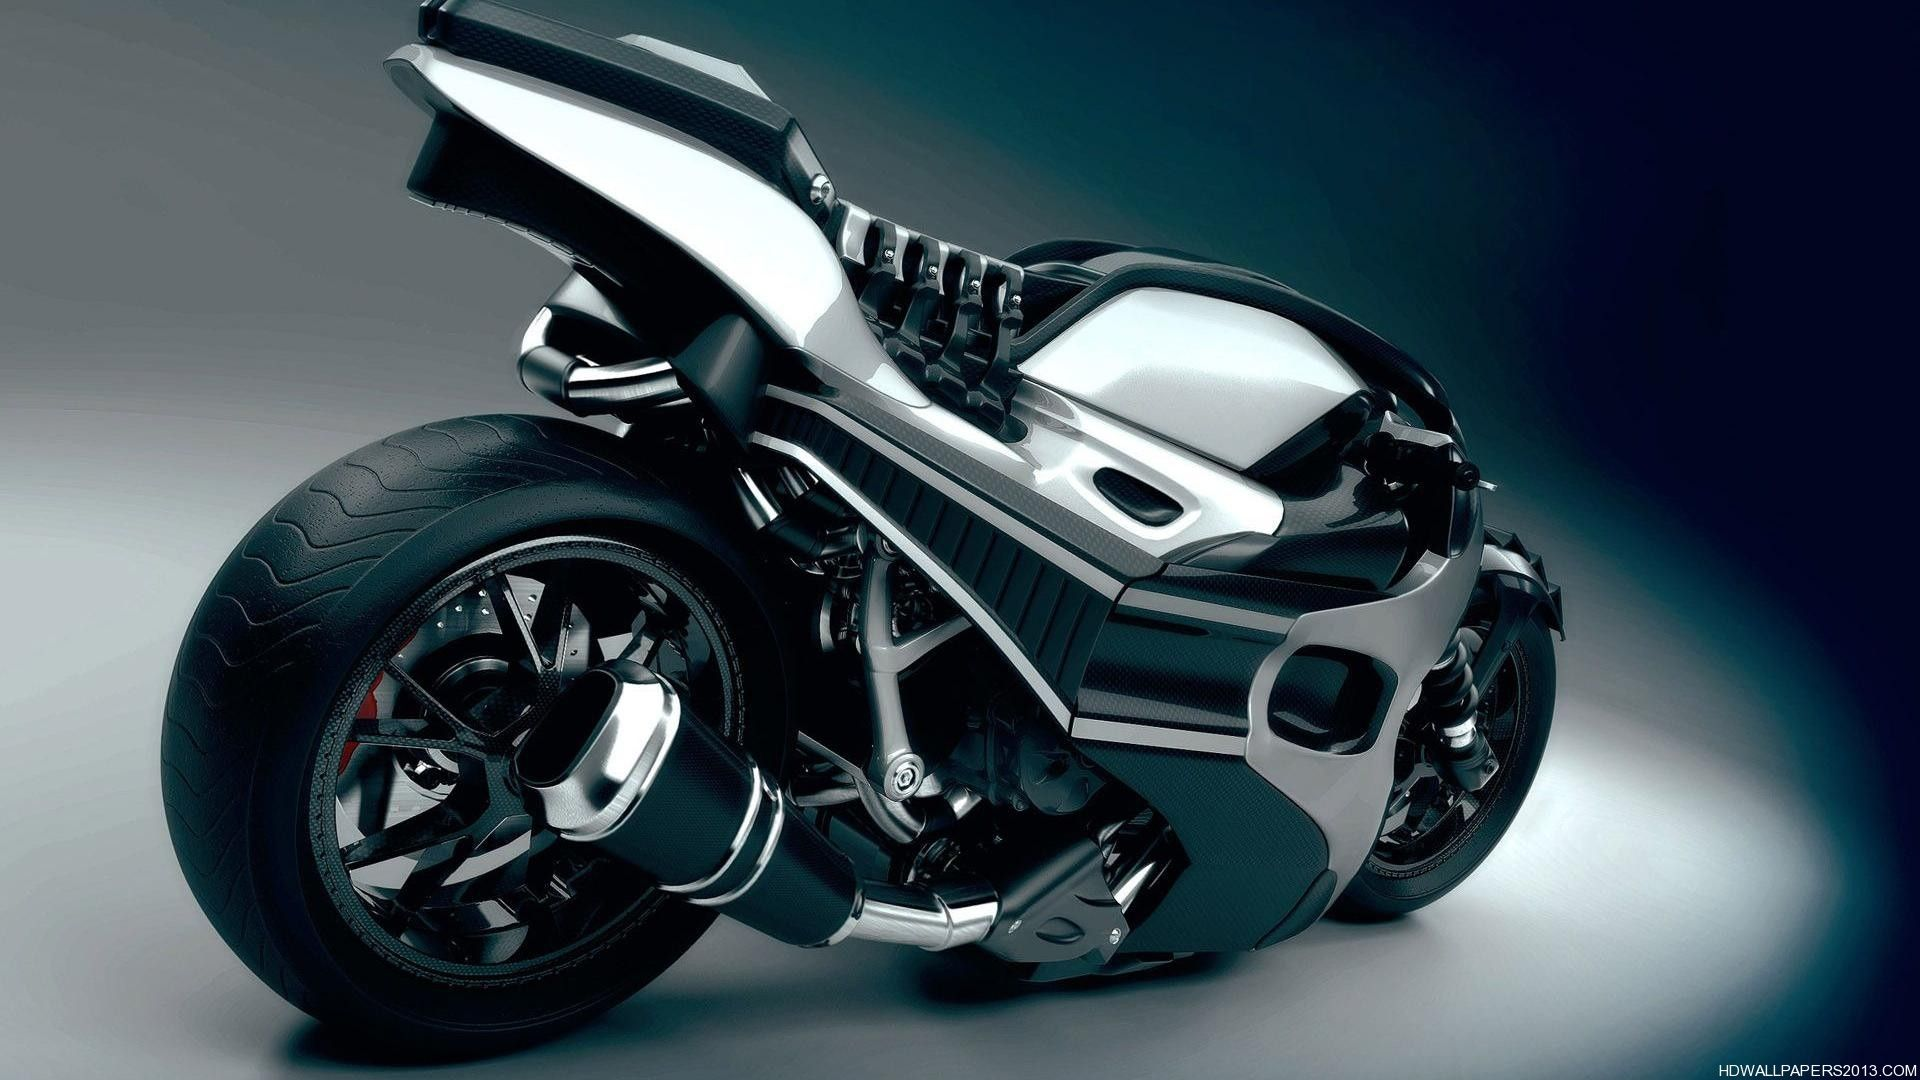 Motorcycle And Sports Cars Wallpapers Top Free Motorcycle And